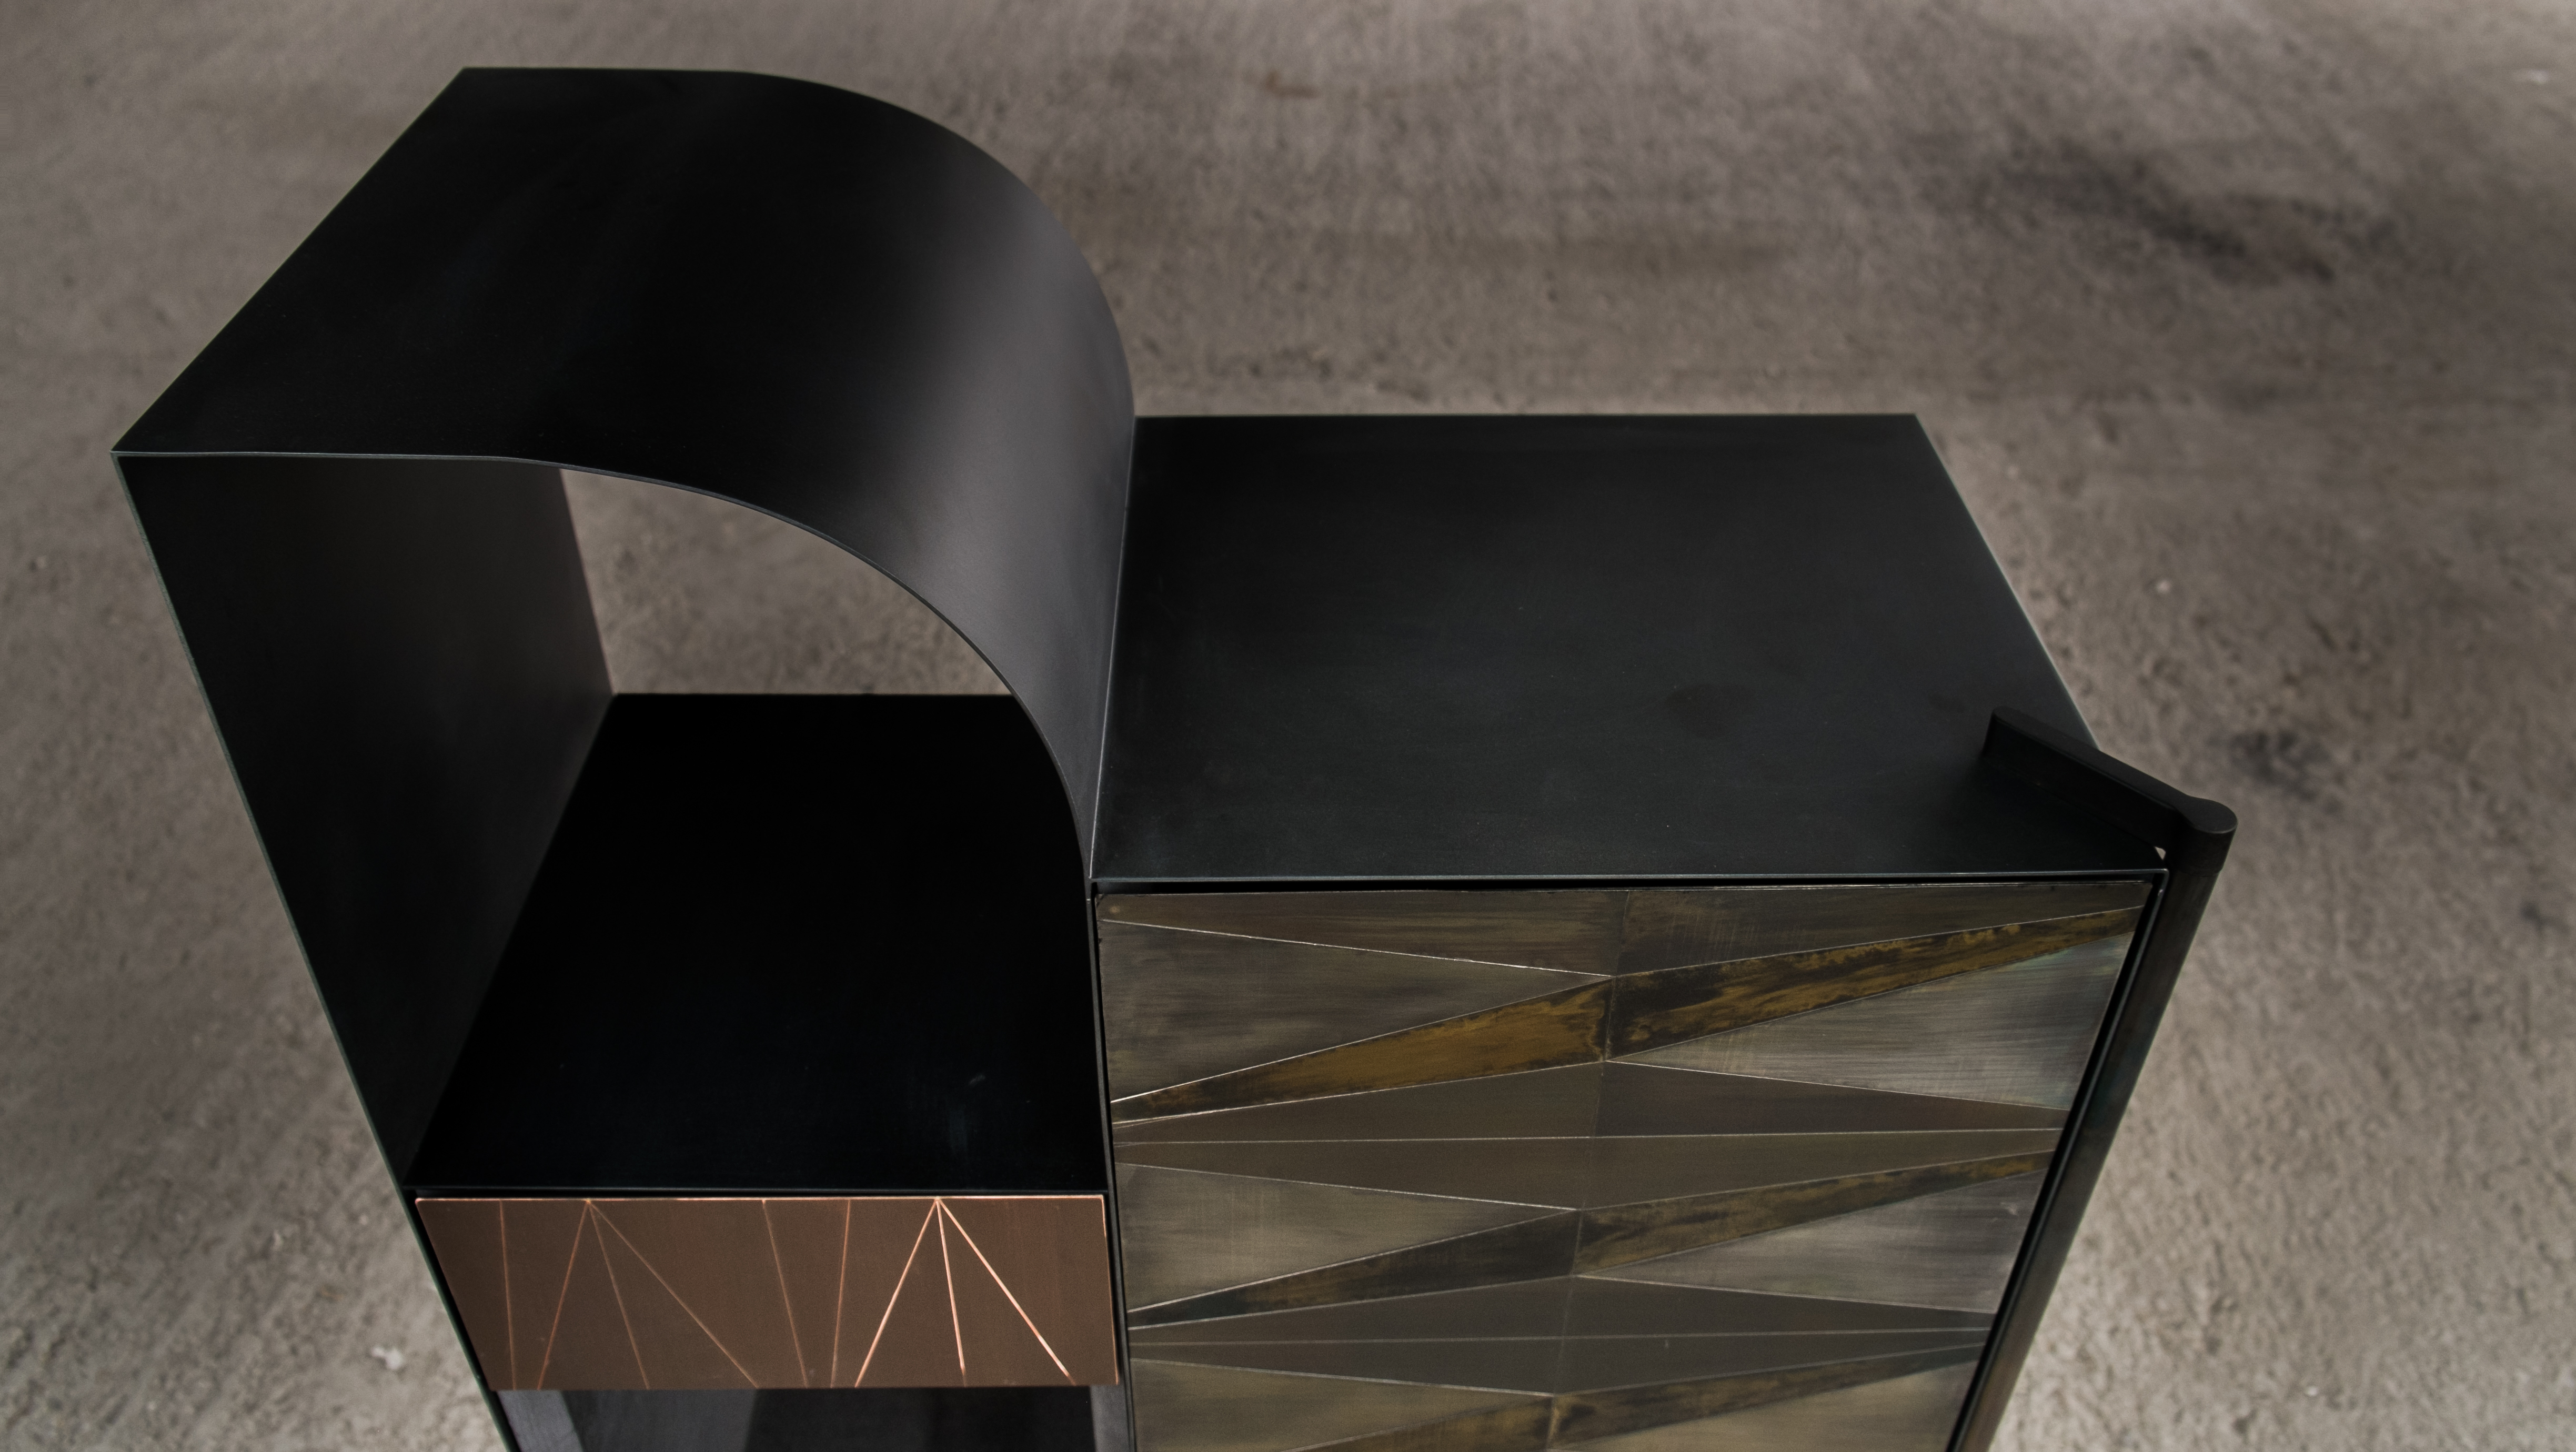 Marque' Console - <p>The collection by Alessandro Zambelli comprises a series of storage furniture that include a small cabinet, a dry bar, a console and a coffee table, where the metal inlays remind of those traditionally found in Art Deco wooden furniture, adding a new element of character and prestige. The linear essentiality of the forms, which is reflected in each element of the collection, is enriched by the presence of precious superficial decors that are juxtaposed through inlays: small metal oxidised plates animate the surface of each storage element with their refined alternation of delicate geometrical motifs. The oxidation process brings a unique mutation of the surface itself, enriched by a whole variety of shades and gradation.<br />